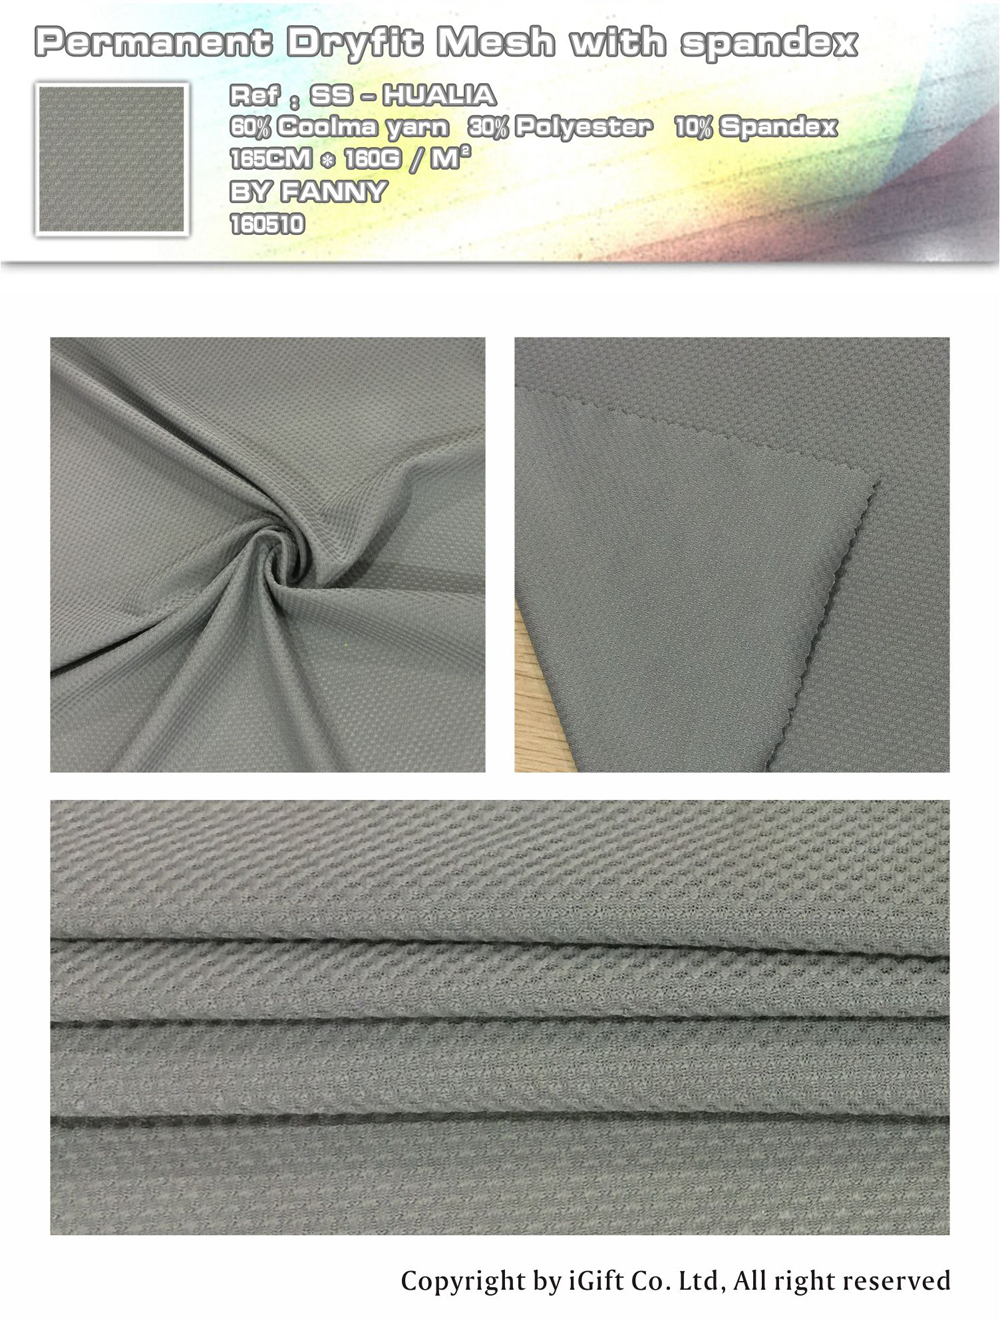 Permanent Dryfit Mesh with spandex        Ref:SS-HUALIA    60% Coolma yarn   30%Polyester 10%Spandex     165CM*160G/M²   BY  FANNY   160510